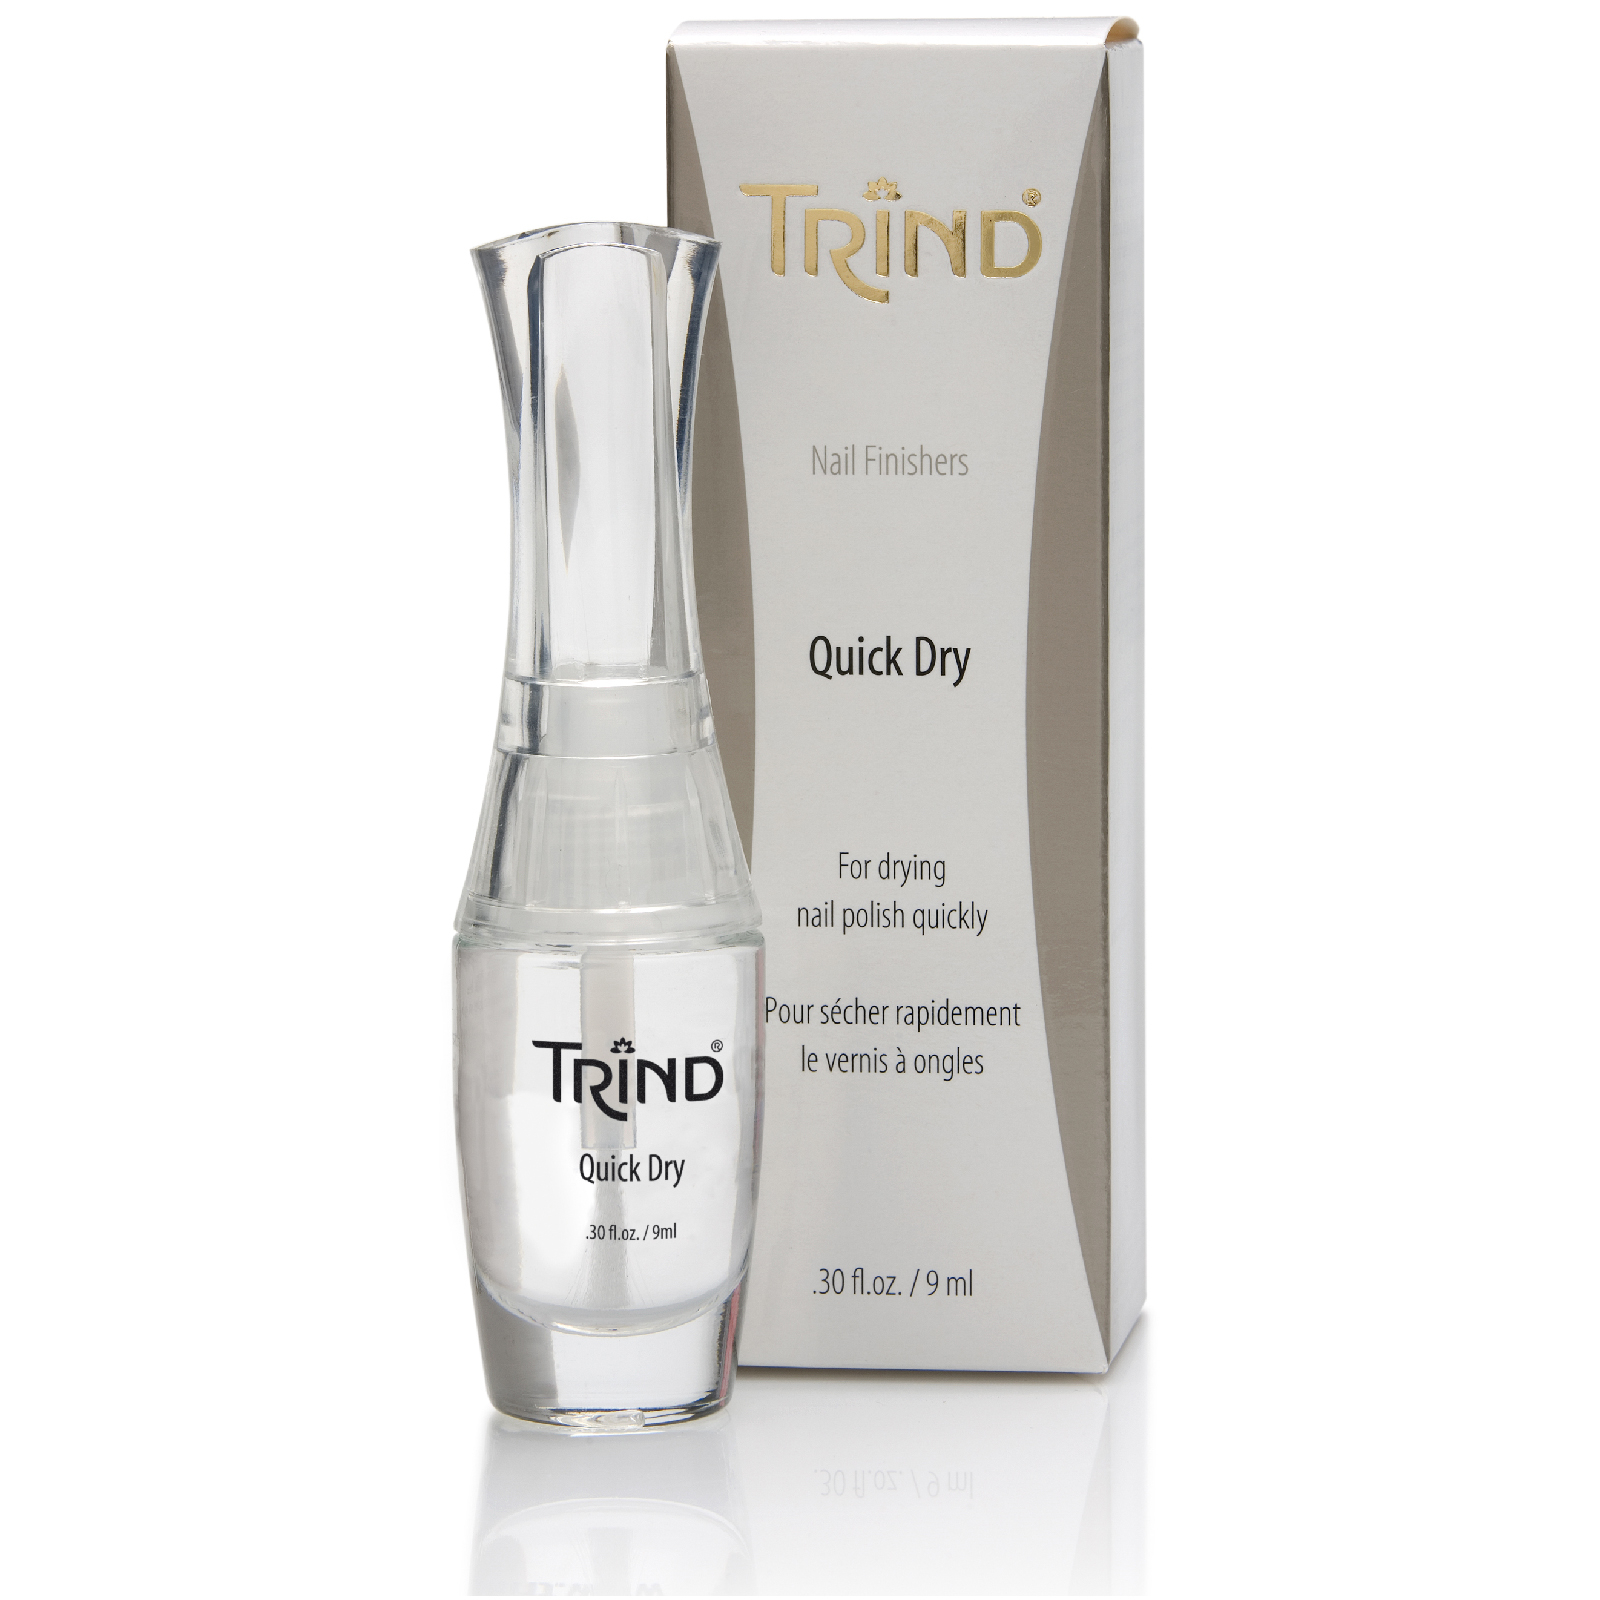 Trind Quick Dry Nail Finisher 9ml | Buy Online At SkinCareRX